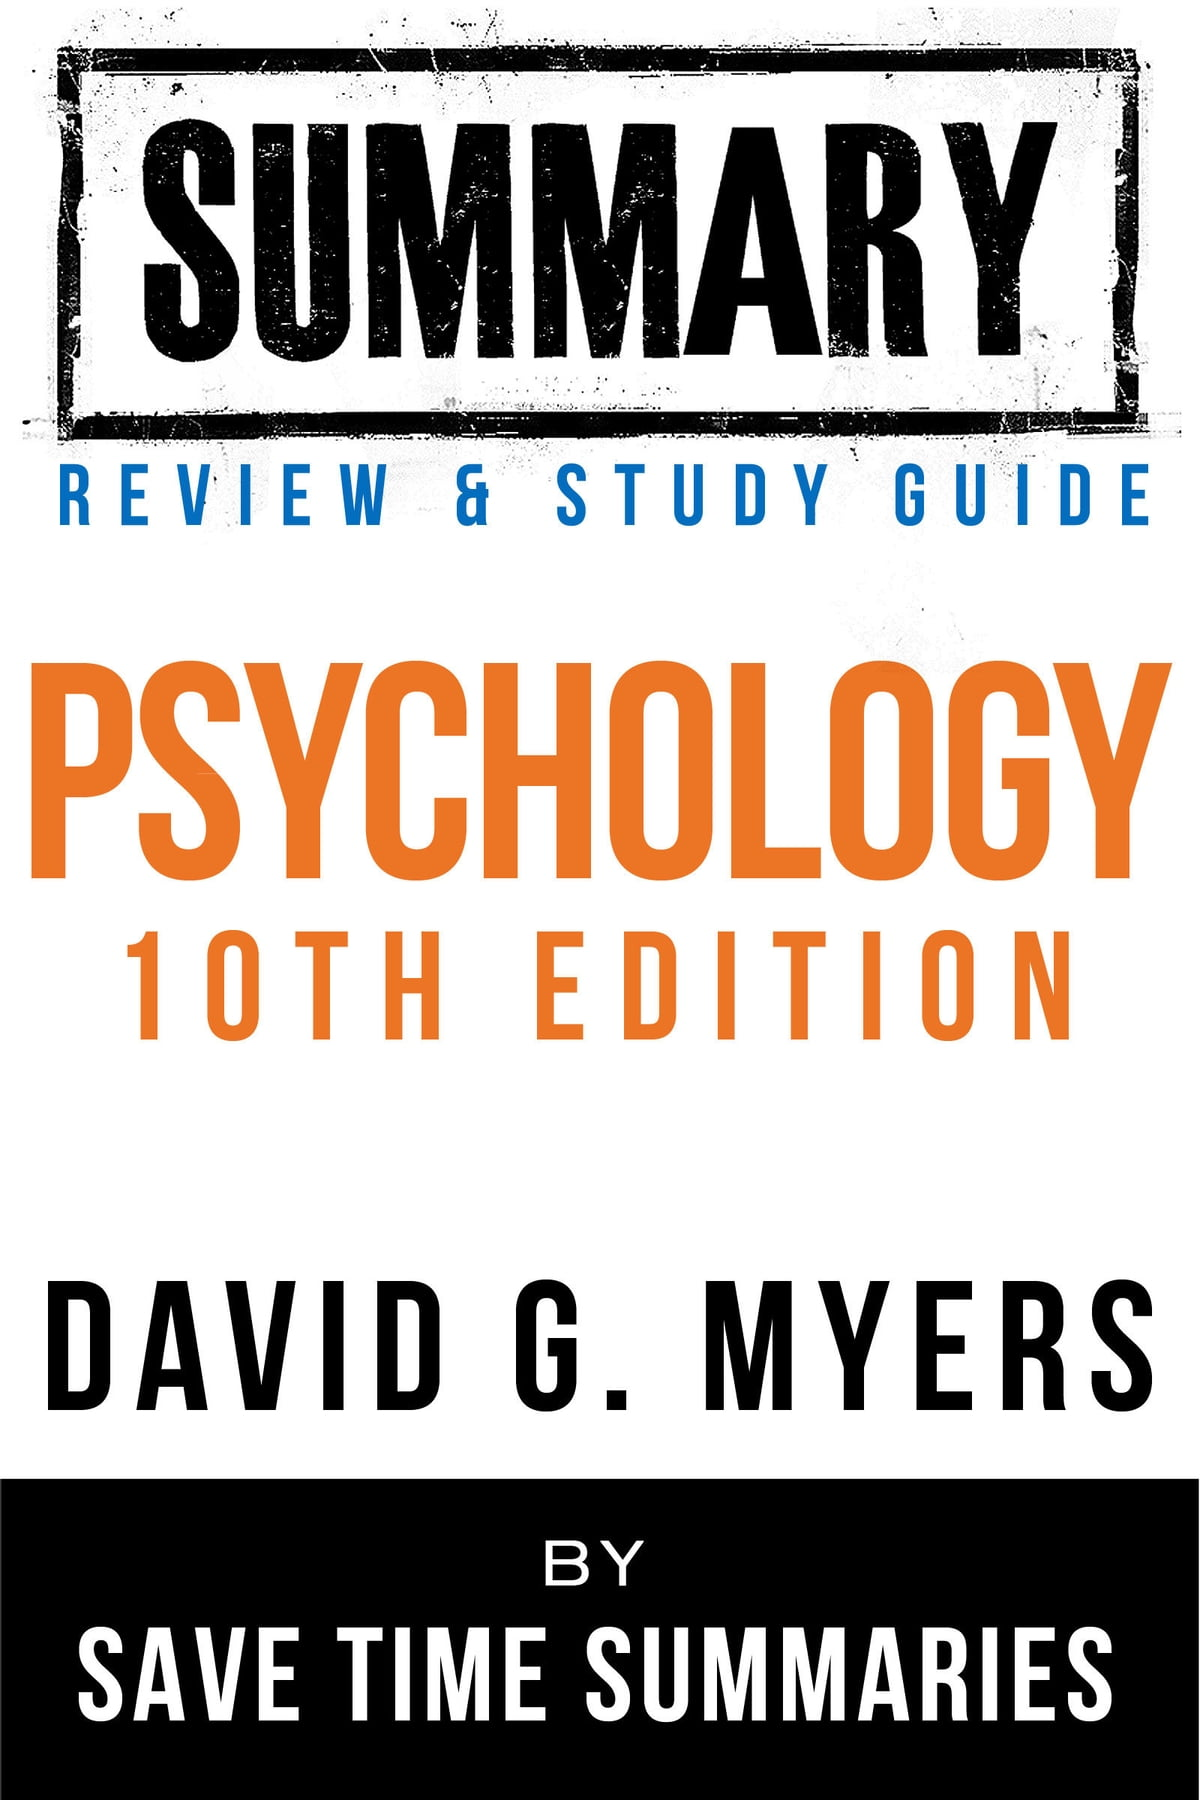 Psychology Textbook 10th Edition: By David G. Myers -- Summary, Review & Study  Guide eBook by Save Time Summaries - 9781301498024 | Rakuten Kobo